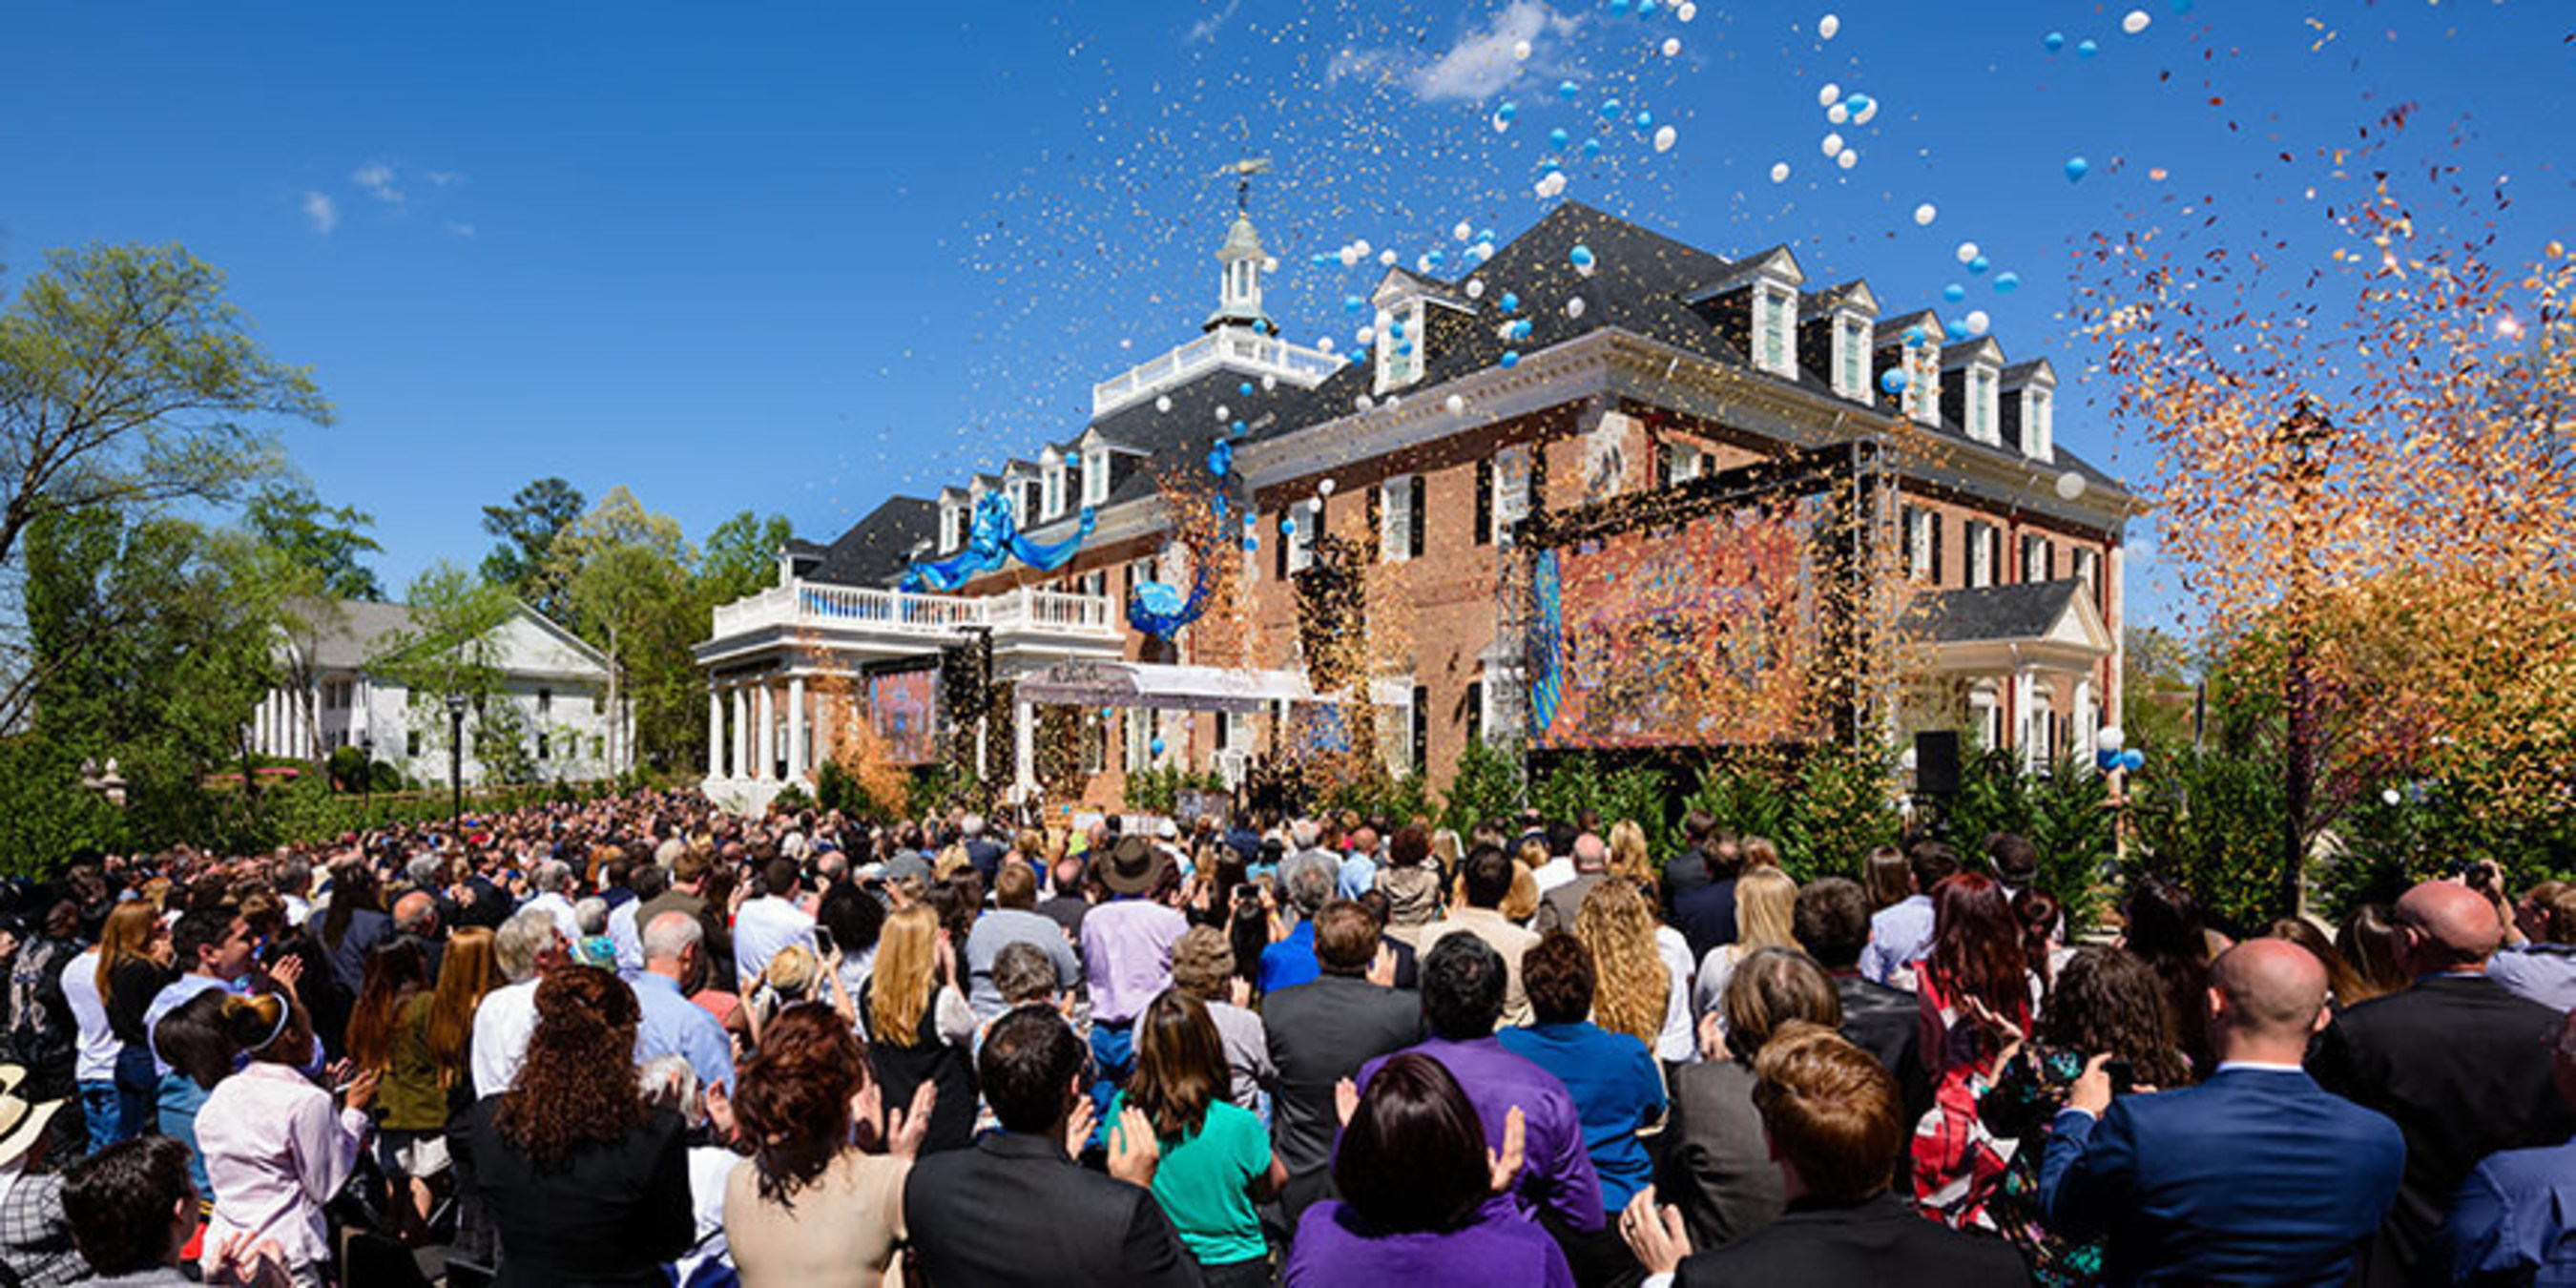 Georgias scientology church opens on bright shiny day for spirit of this is scientology for a new american south said david miscavige the ecclesiastical leader of scientology and the chairman of the board of the malvernweather Choice Image